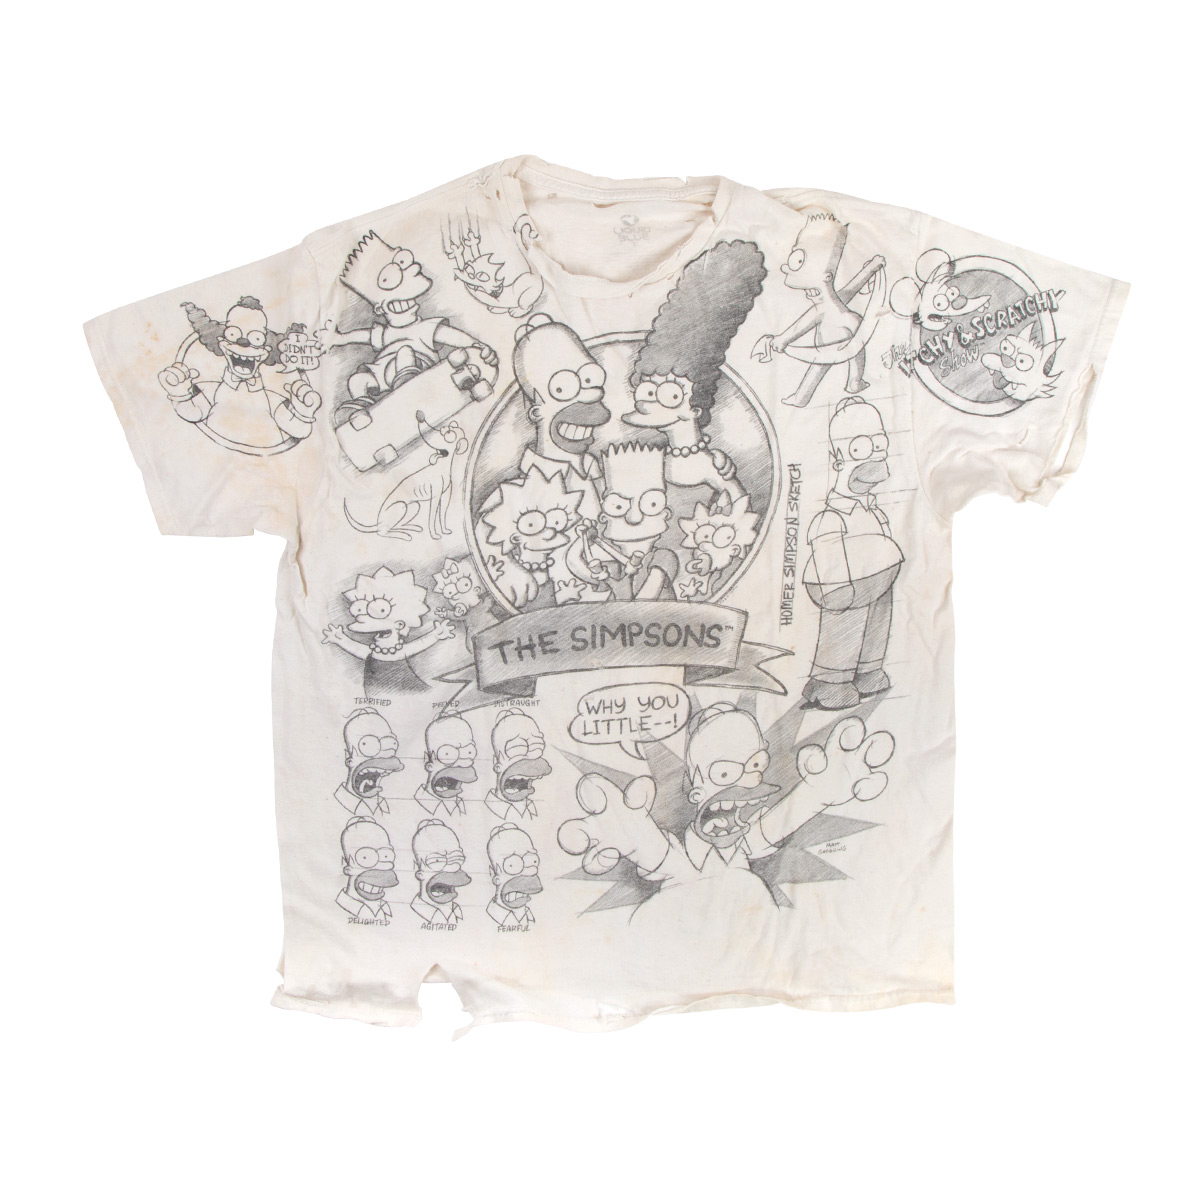 The Simpsons Sketch Tee (XL)